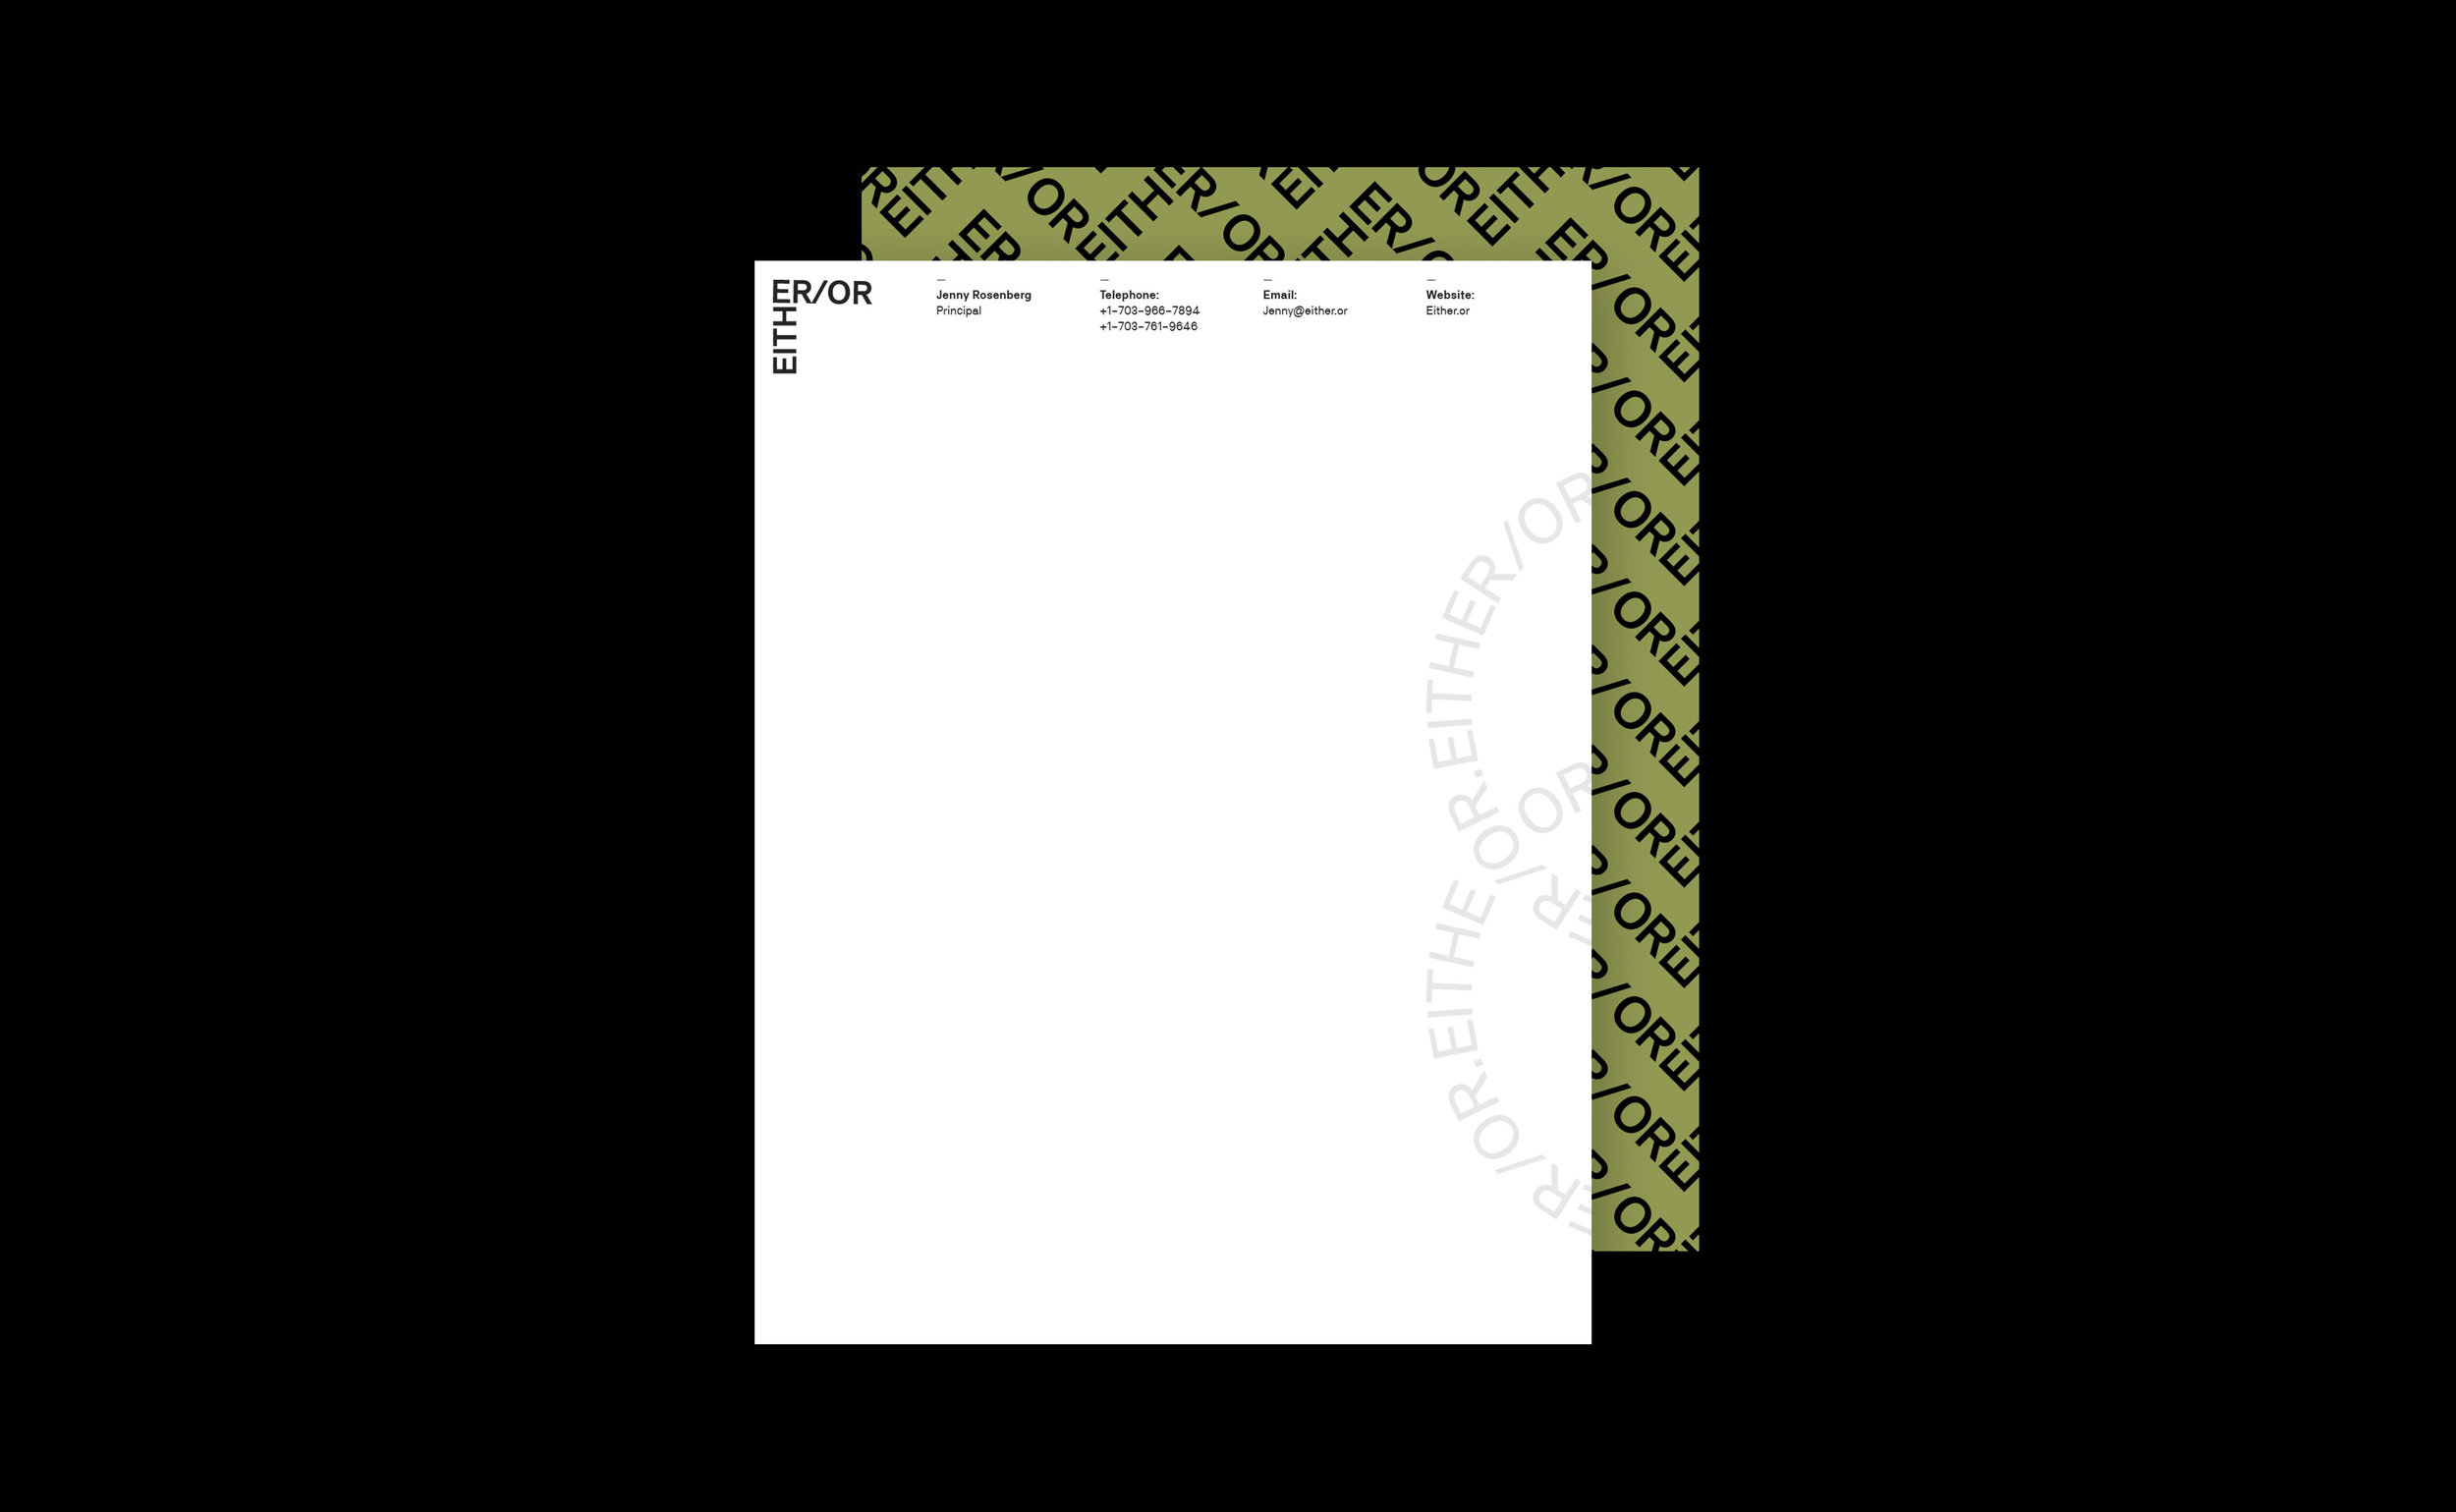 EITHER/OR : APPLICATION 2 : LETTERHEAD